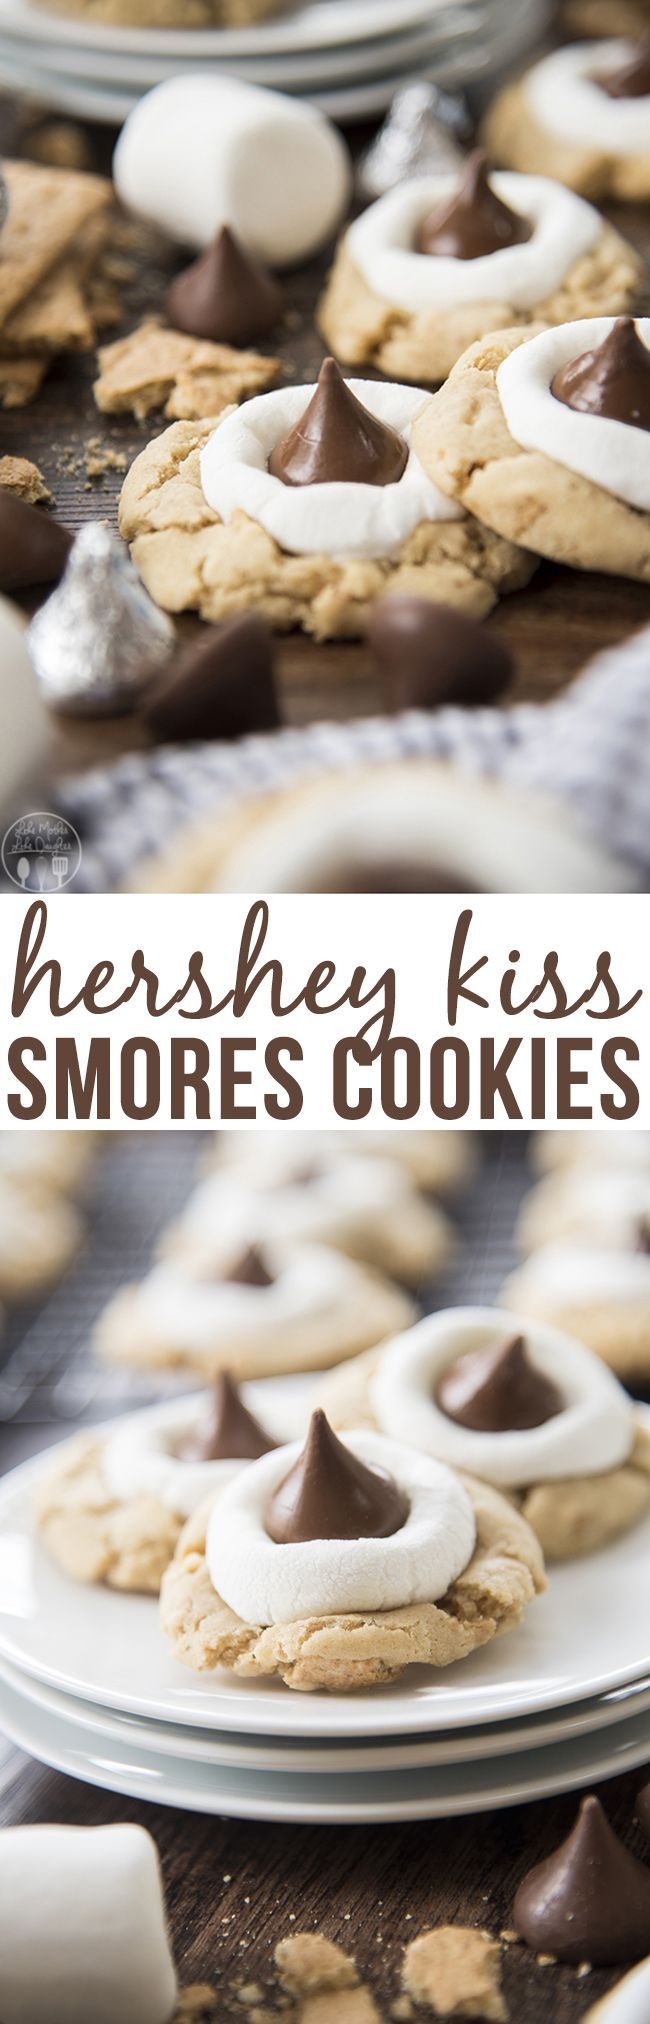 Hershey Kiss Smores Cookies – These smores cookies start with a graham c